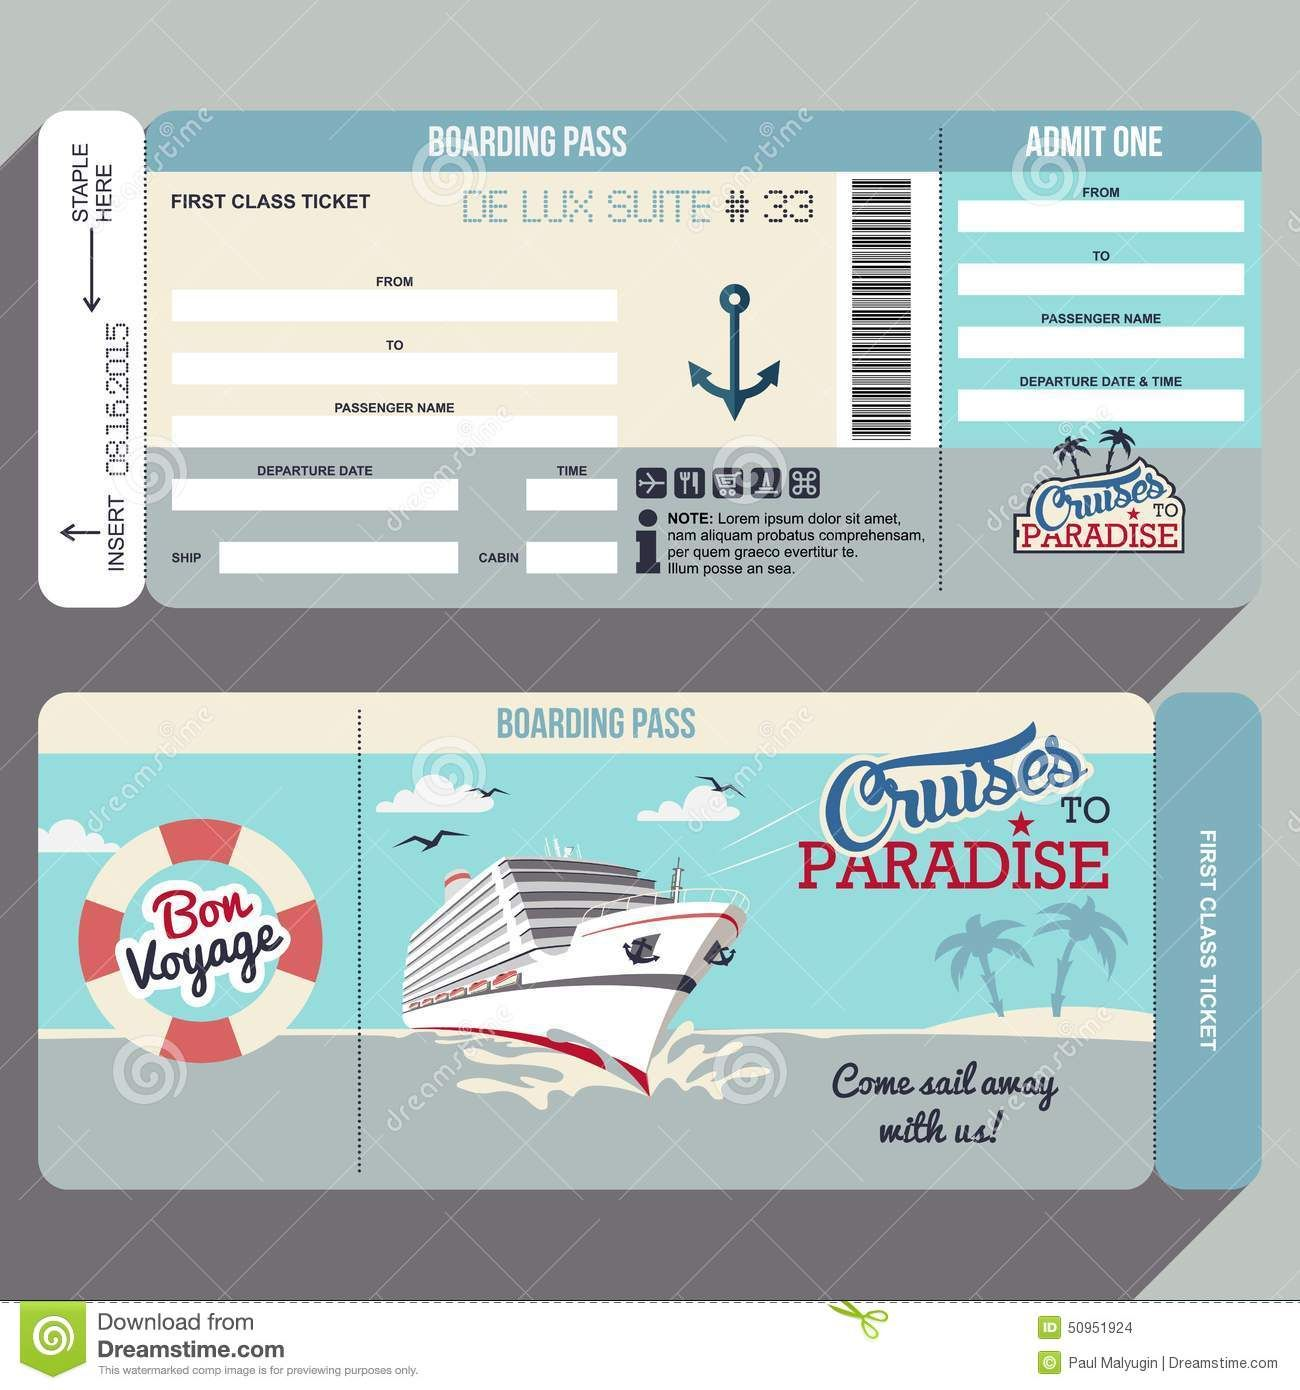 Cruises To Paradise Boarding Pass Design  Wedding Invites